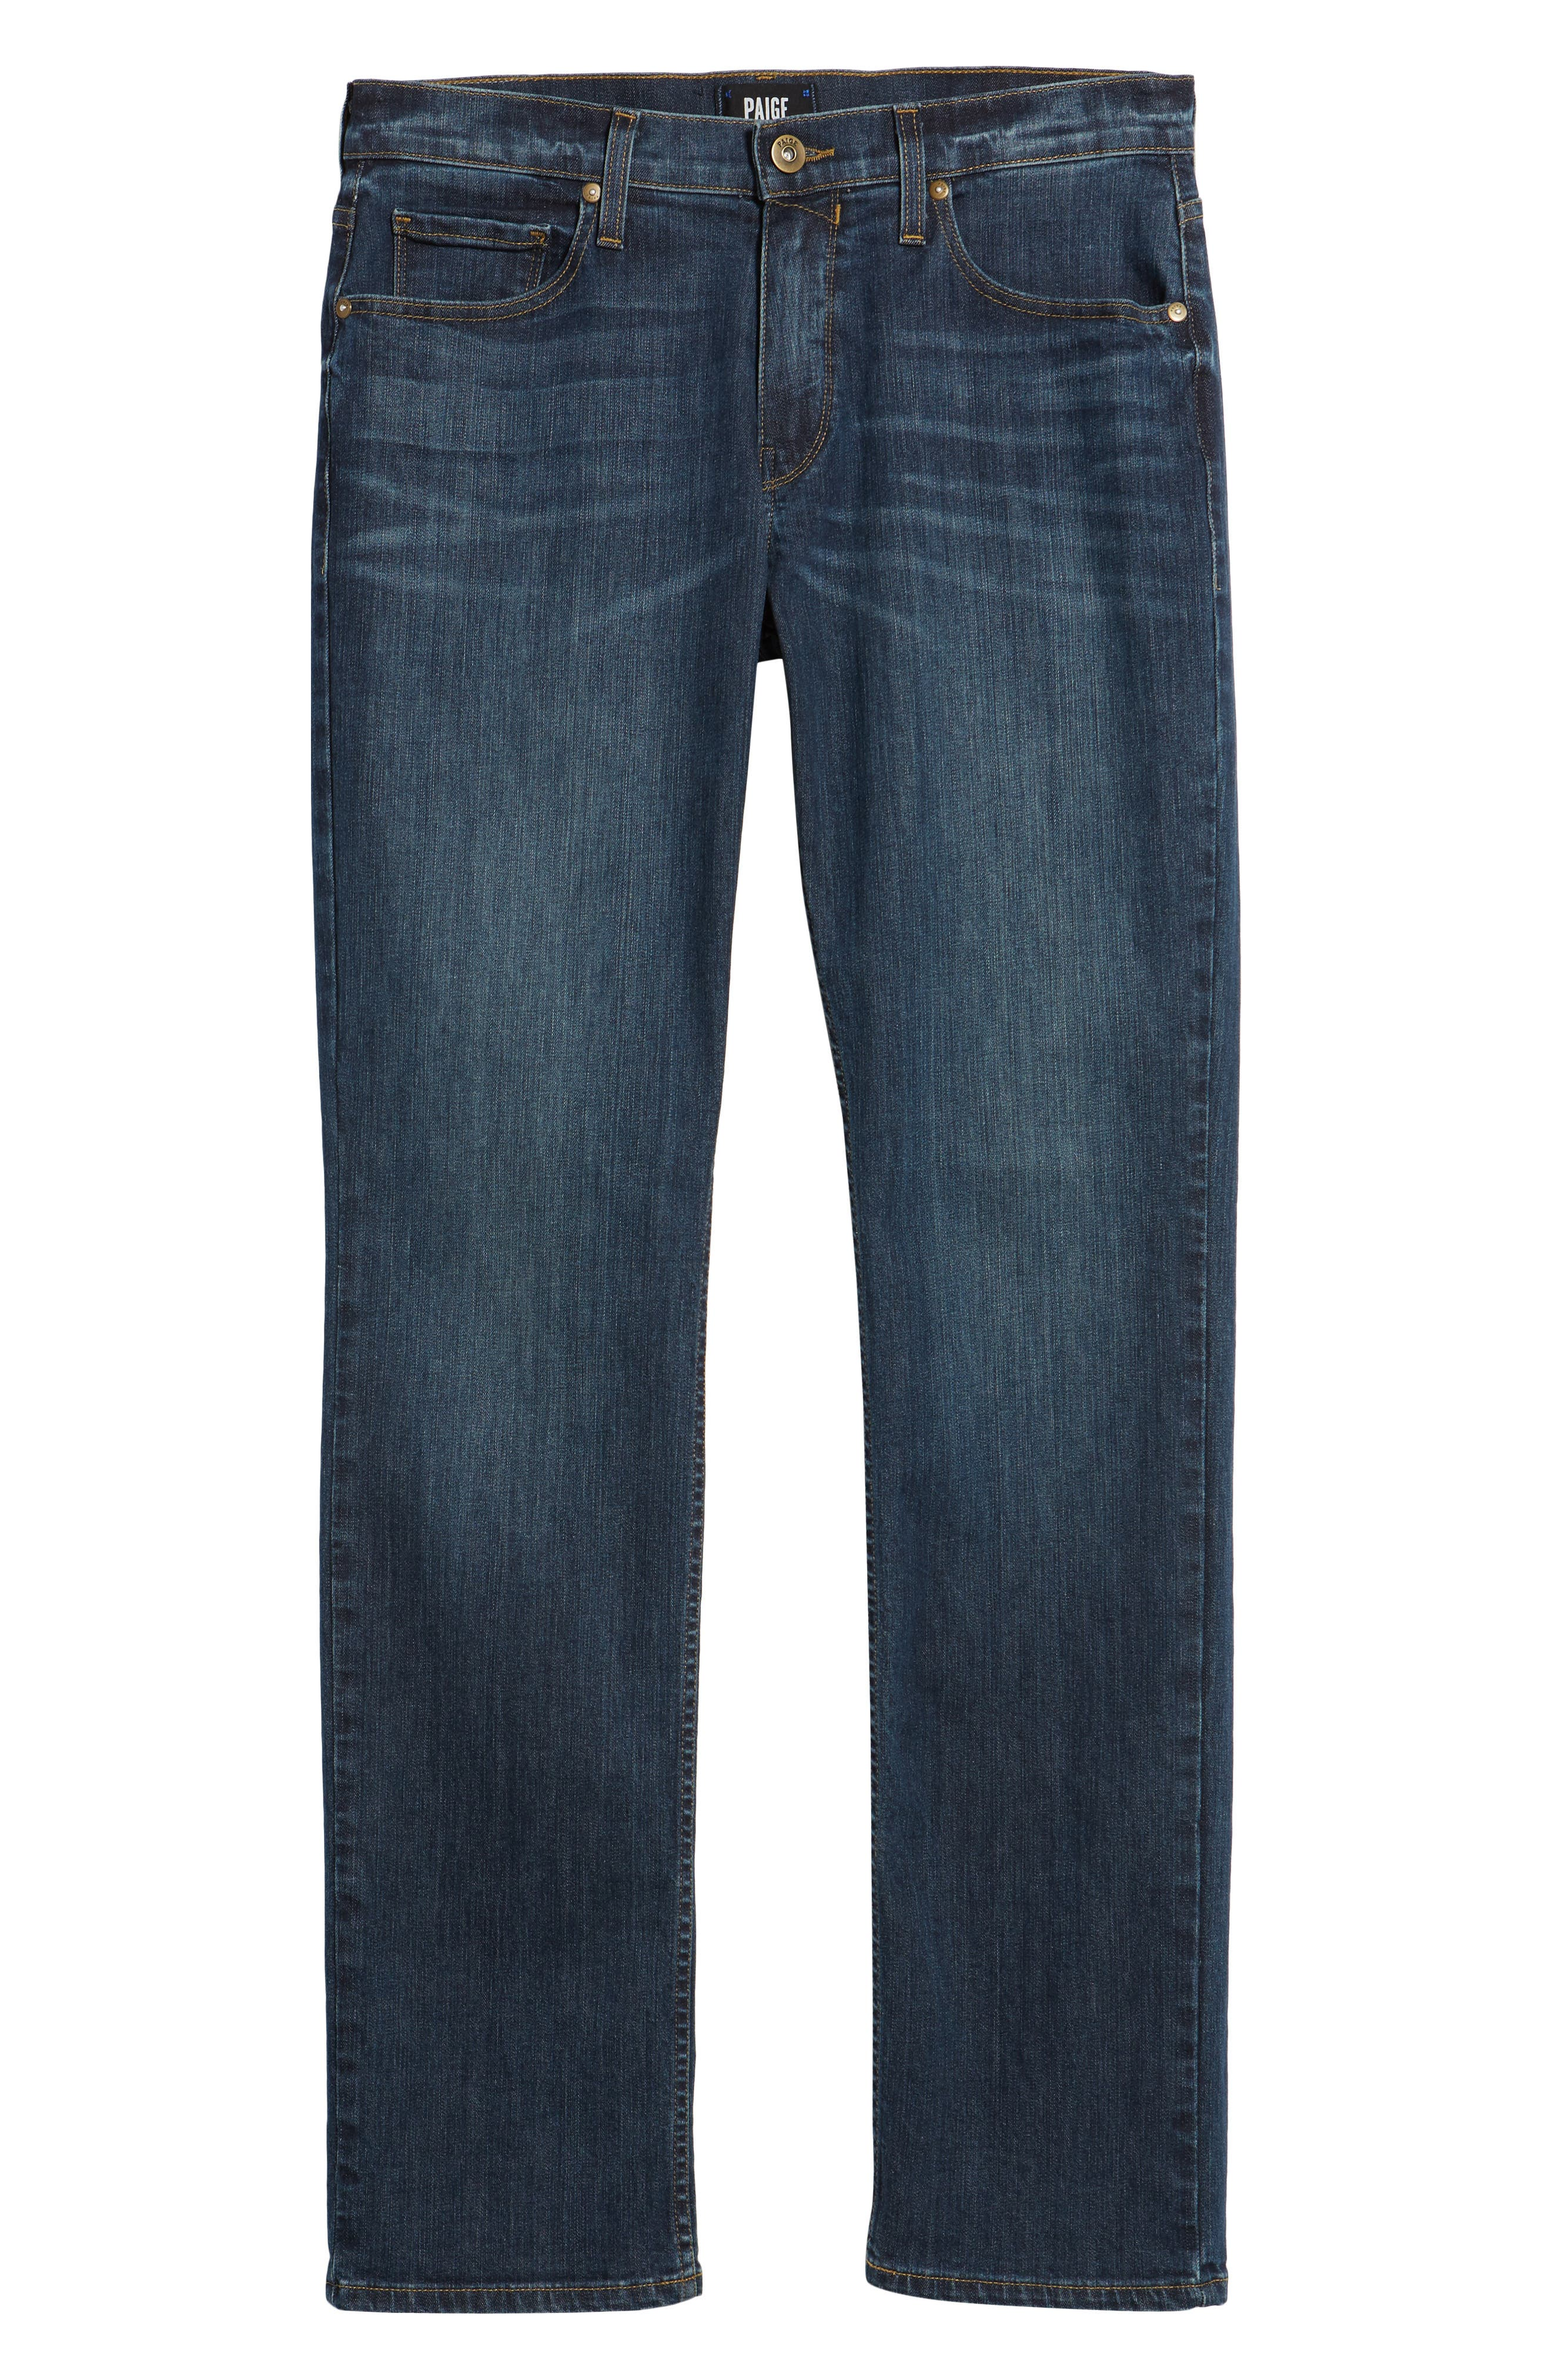 Legacy - Normandie Straight Fit Jeans,                             Alternate thumbnail 6, color,                             400